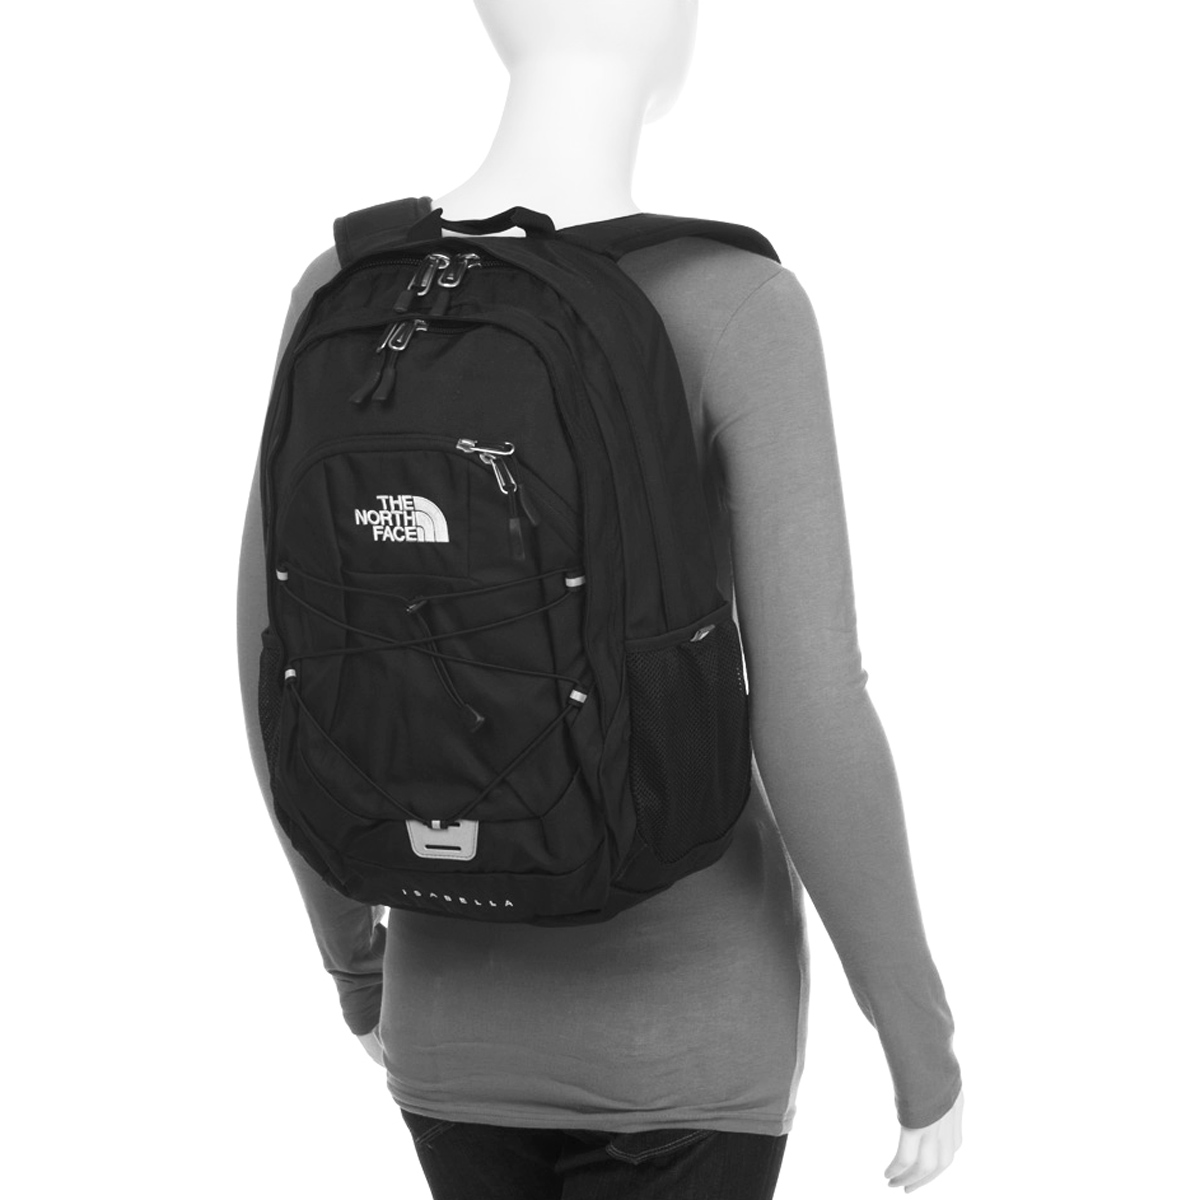 3b93bec3d2 Sac à dos The North Face Isabella Noir Femme F01